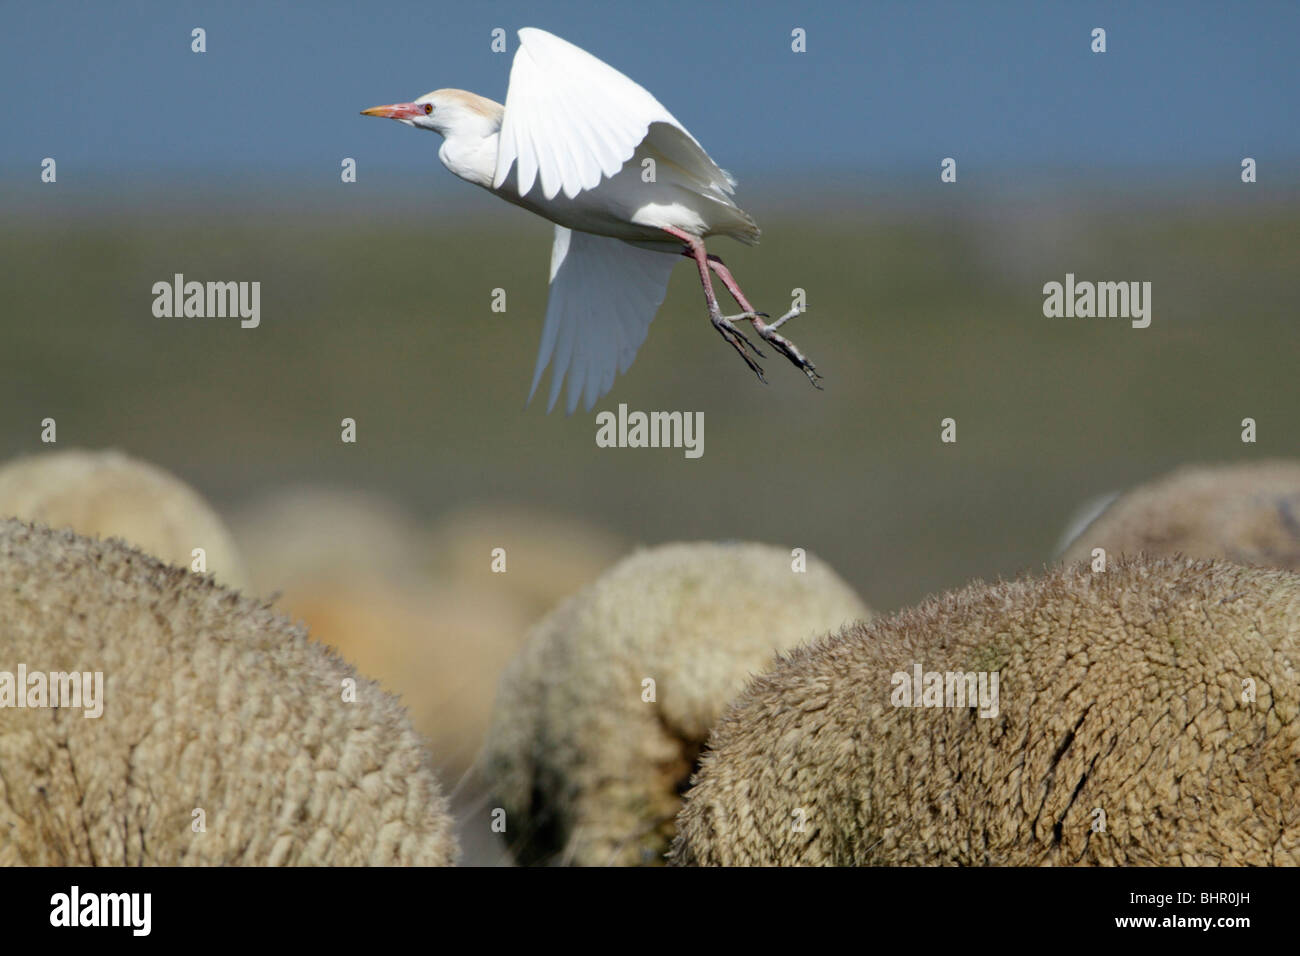 Cattle Egret (Bubulcus ibis), flying off from merino sheep's back, Portugal - Stock Image